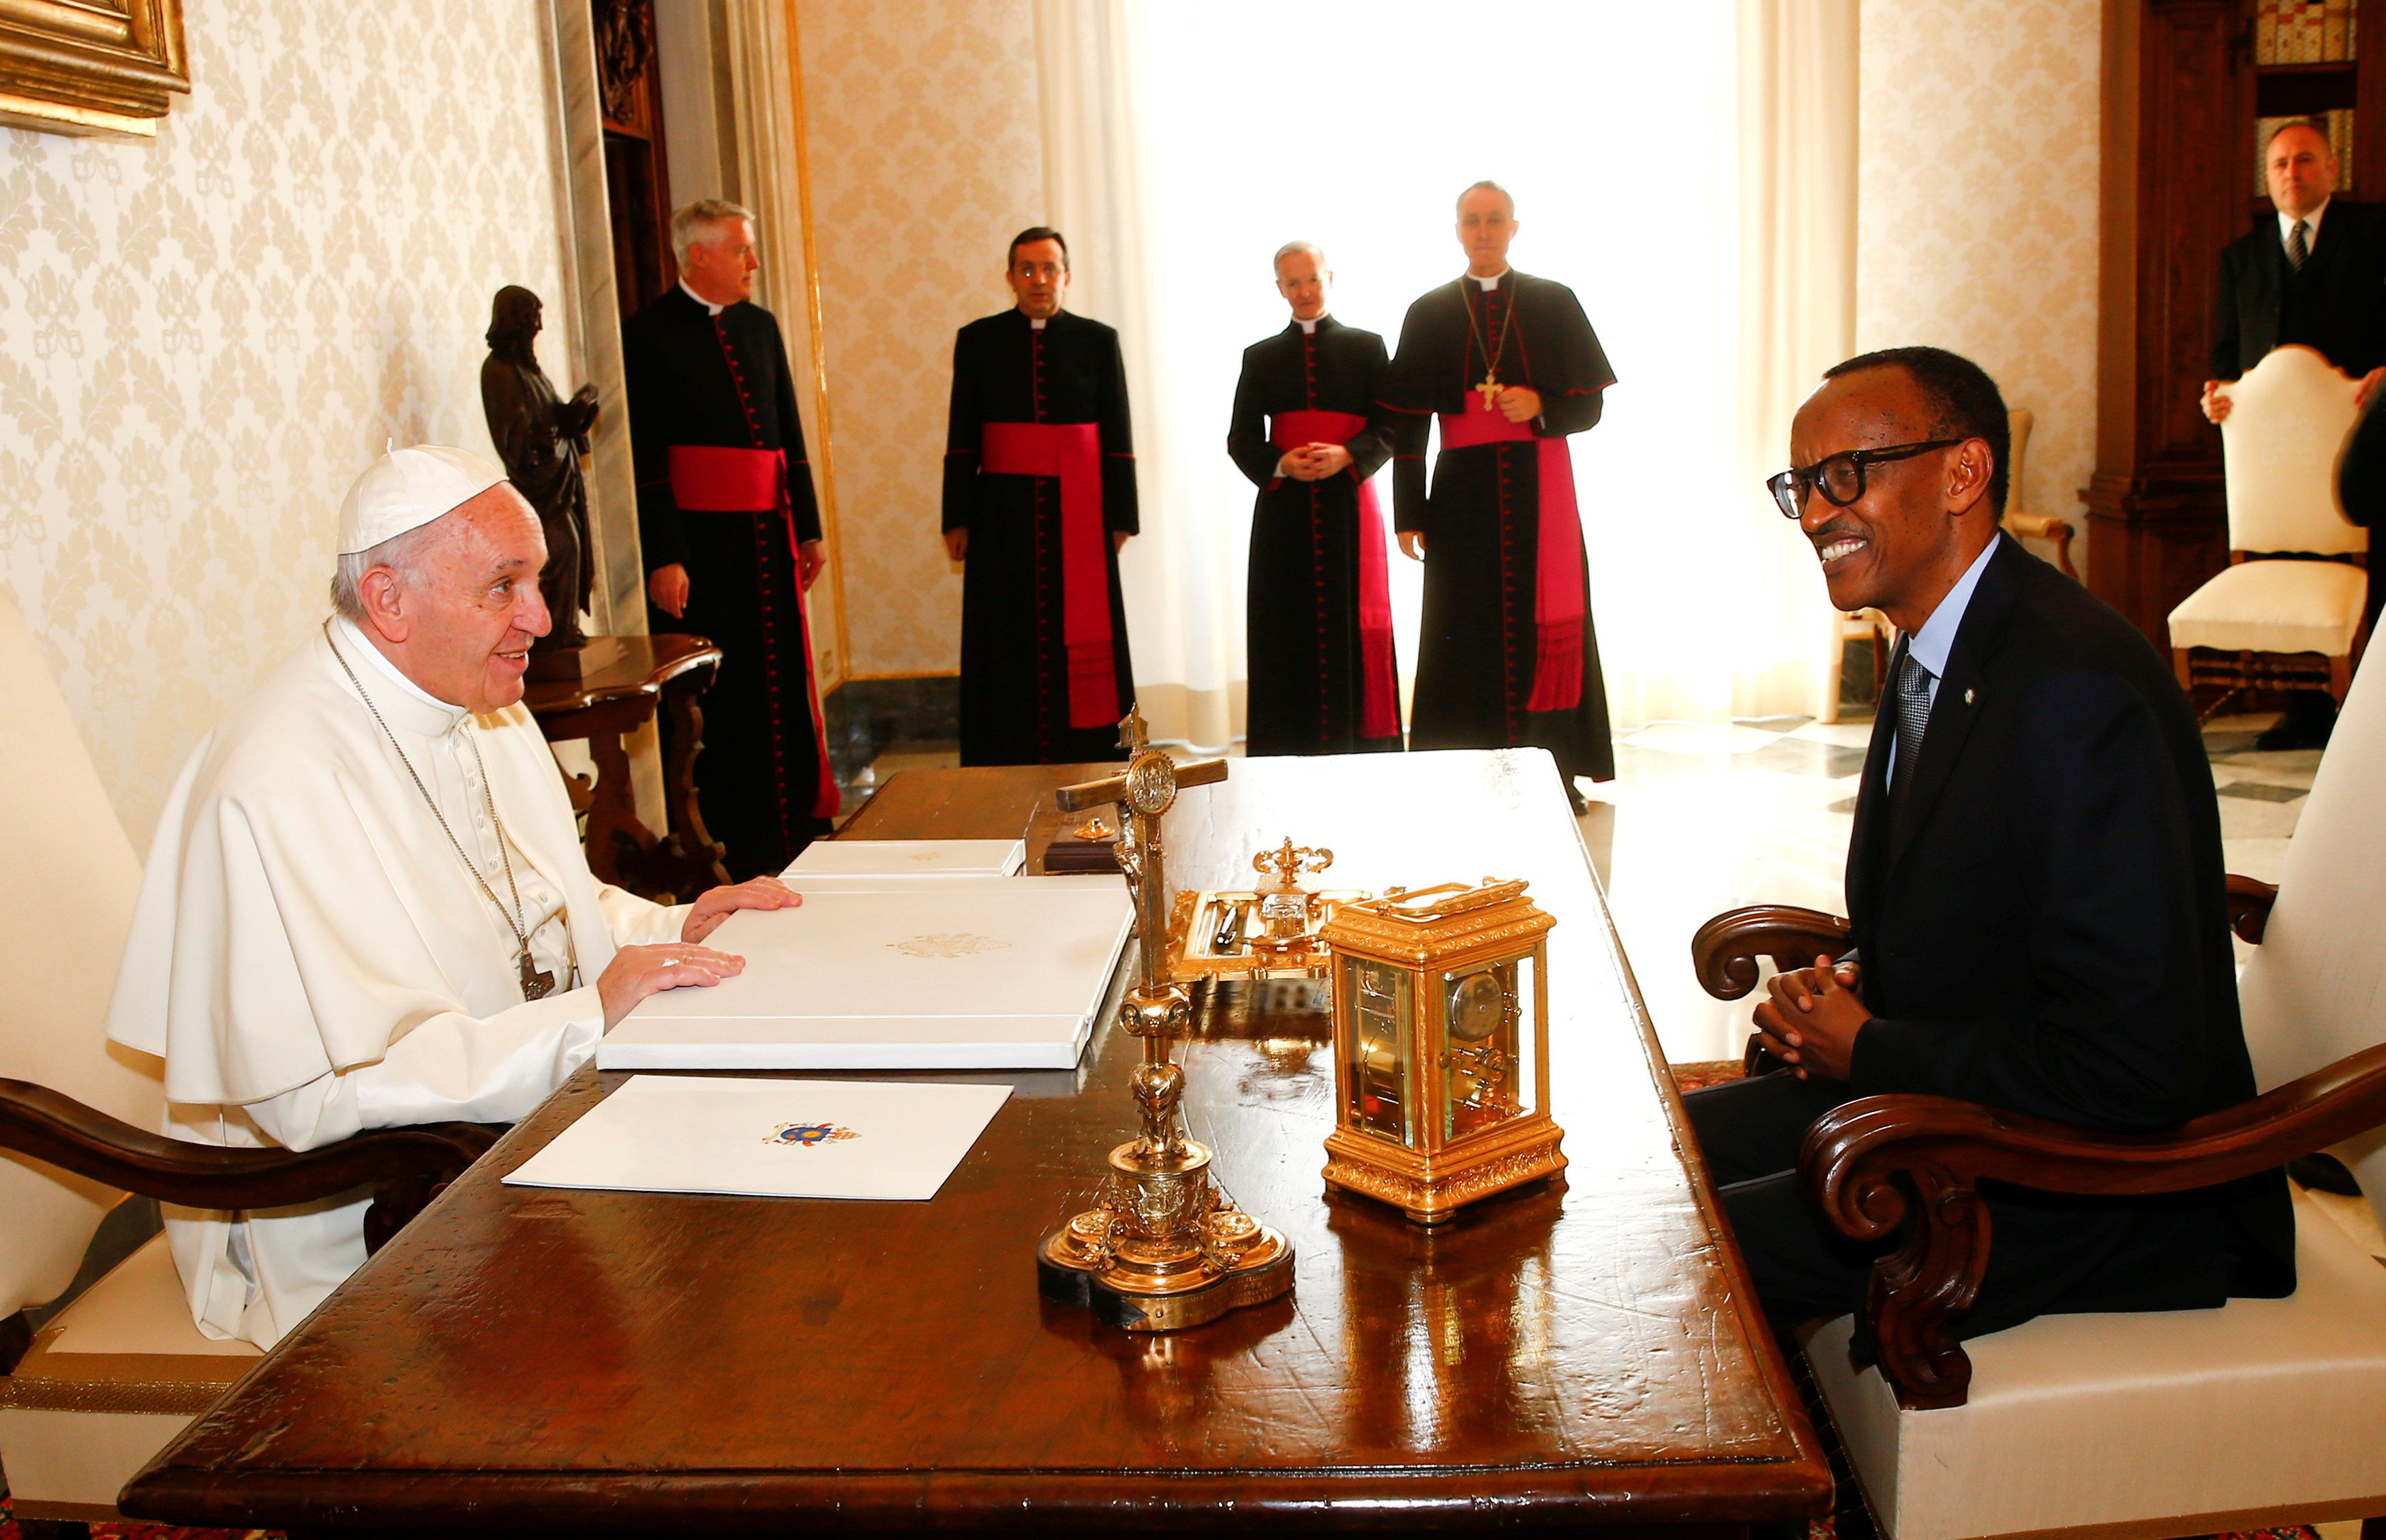 Pope Francis talks with Rwanda's President Paul Kagame during a private meeting at the Vatican March 20, 2017. REUTERS/Tony Gentile